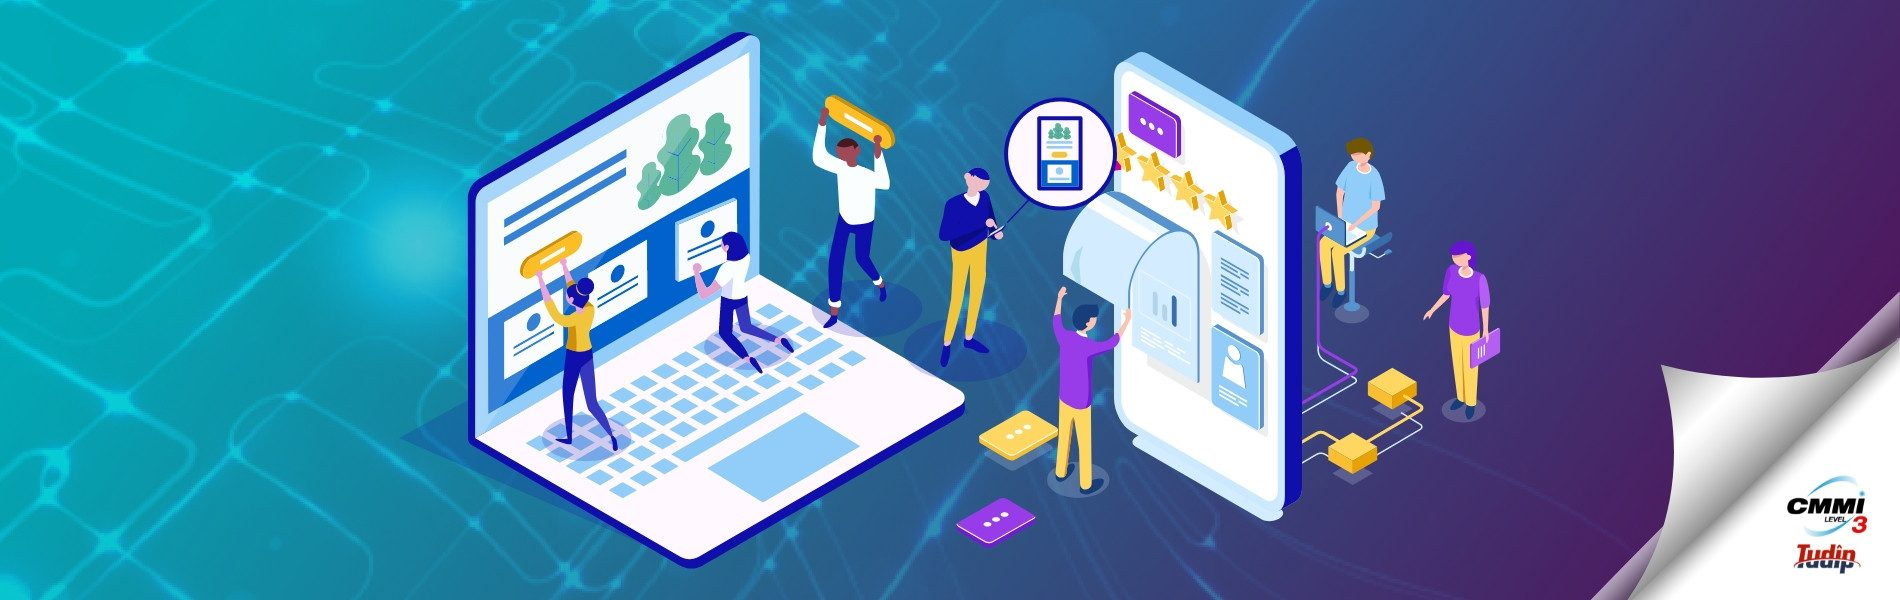 5 UI Animation Trends To Look Out For In 2021